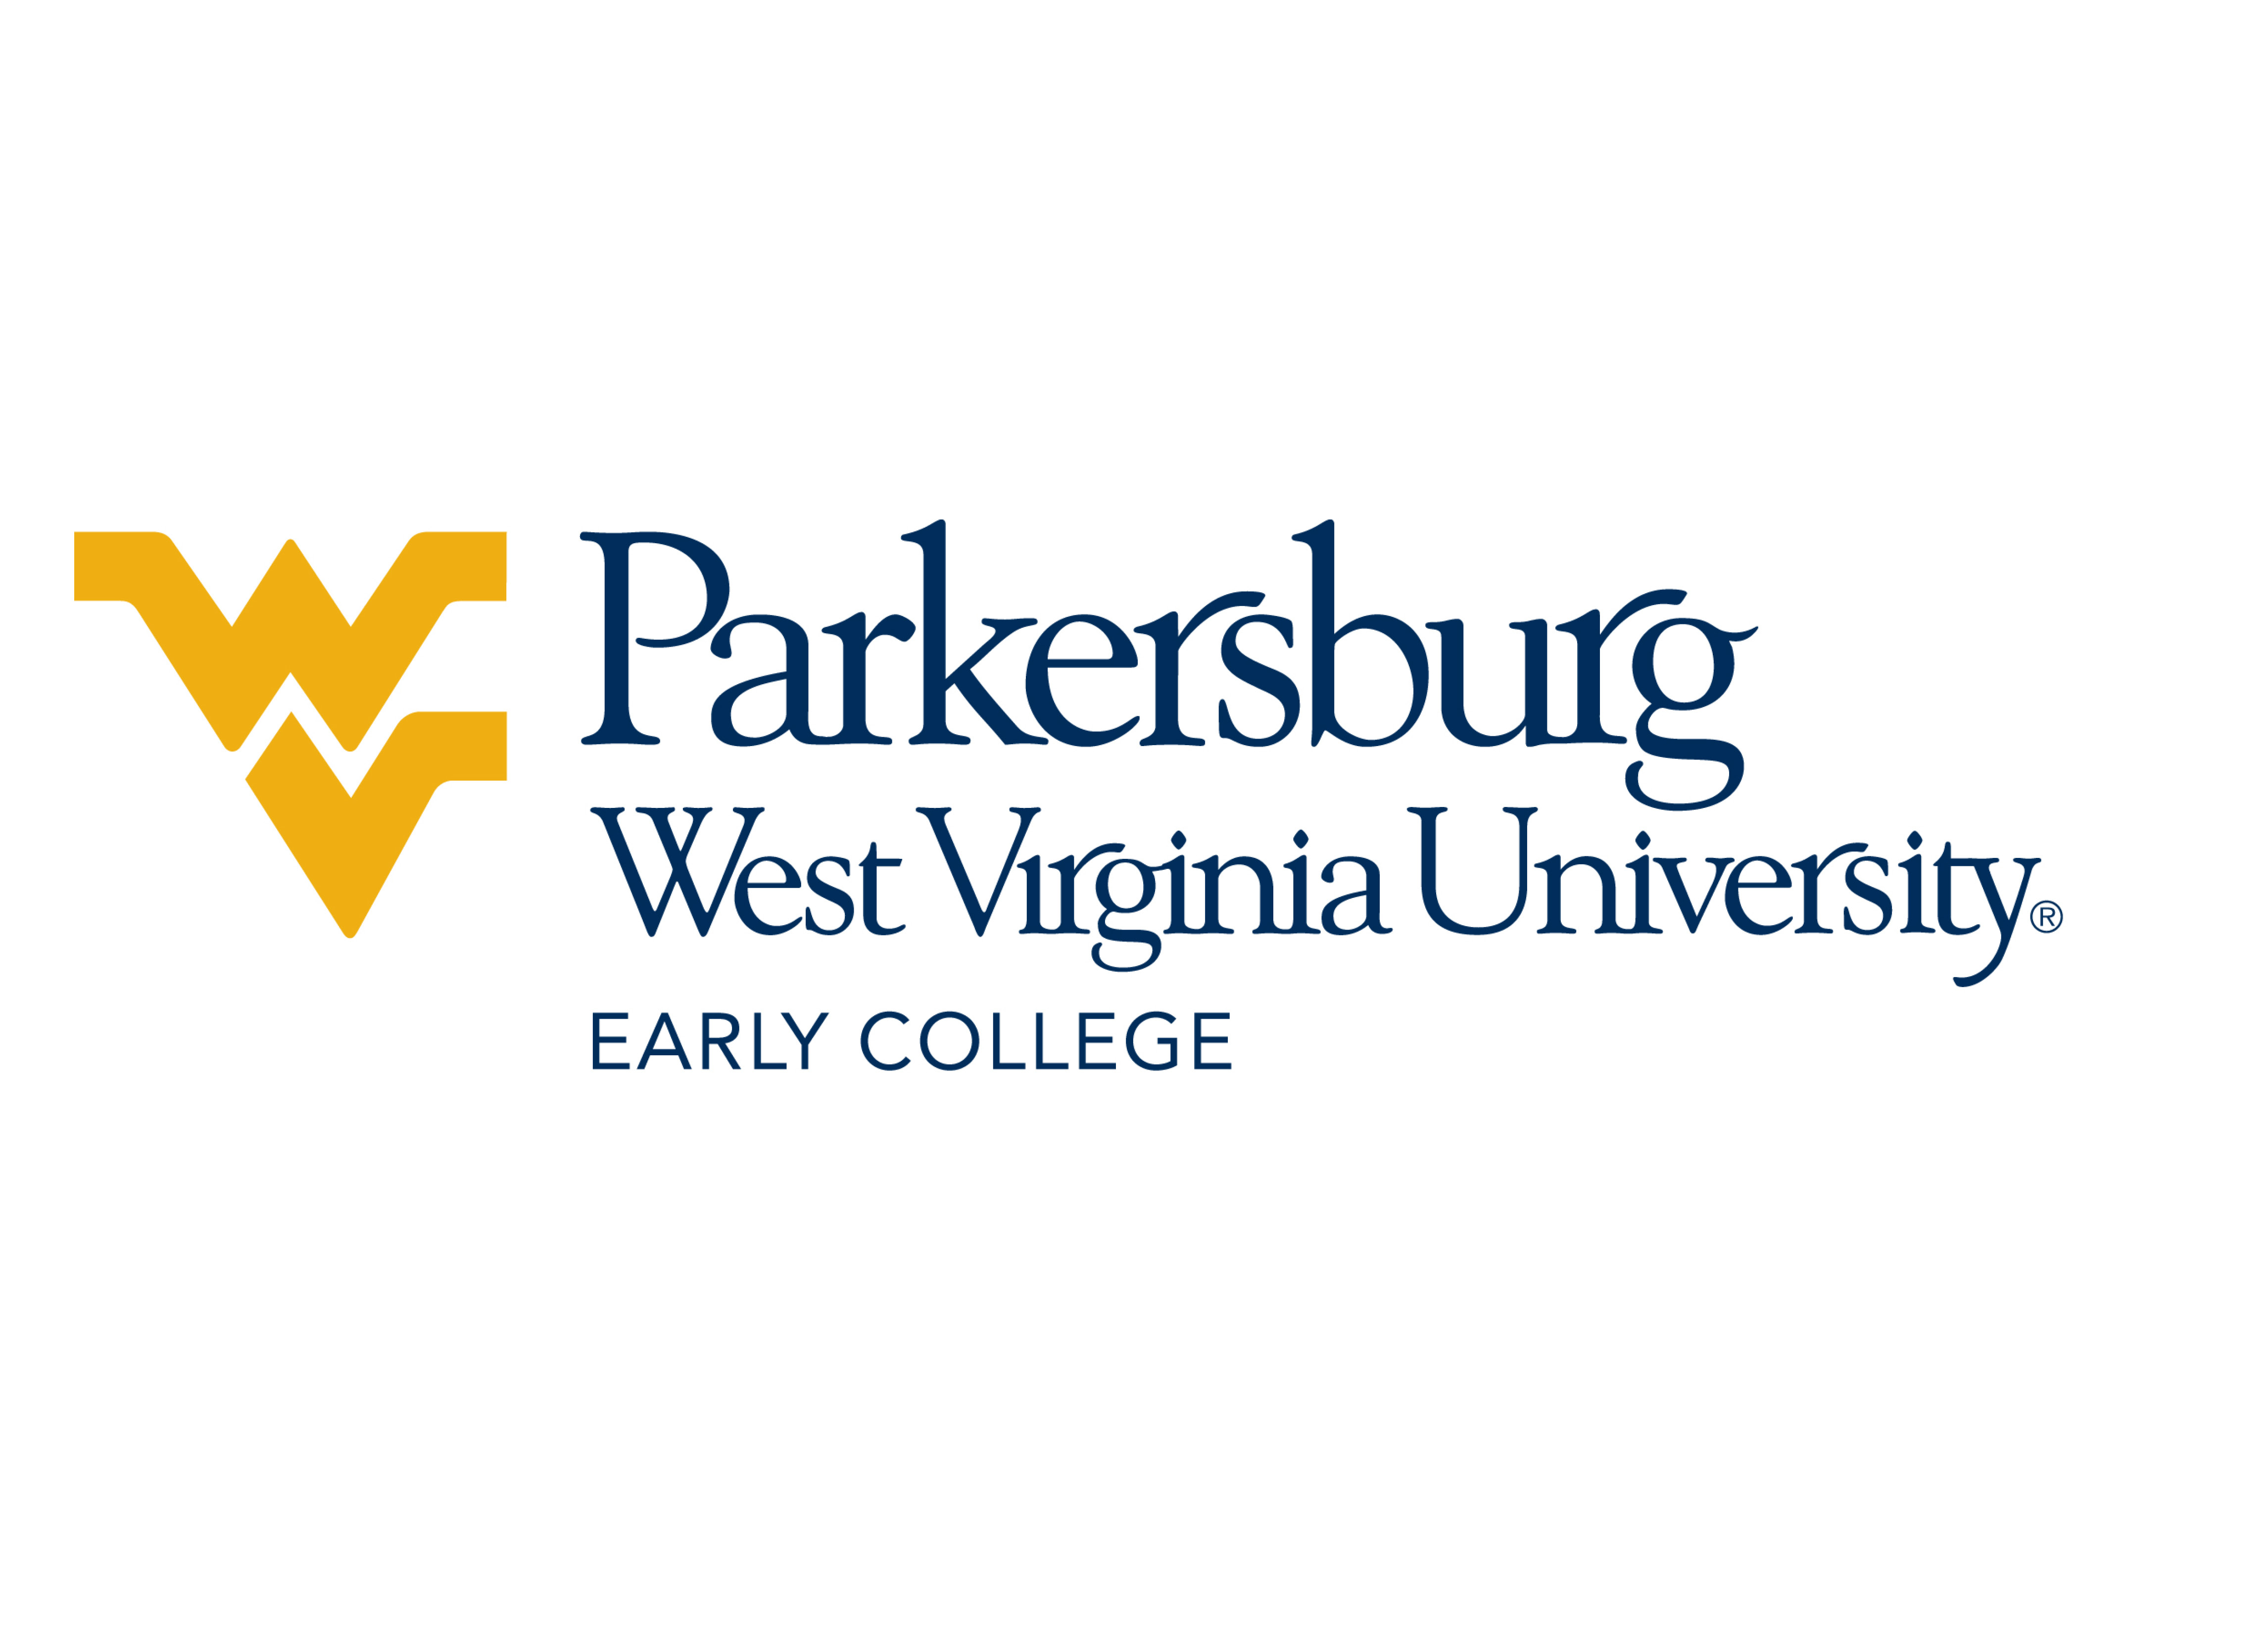 Local high school students earn certificate degree through WVU Parkersburg's Early College program